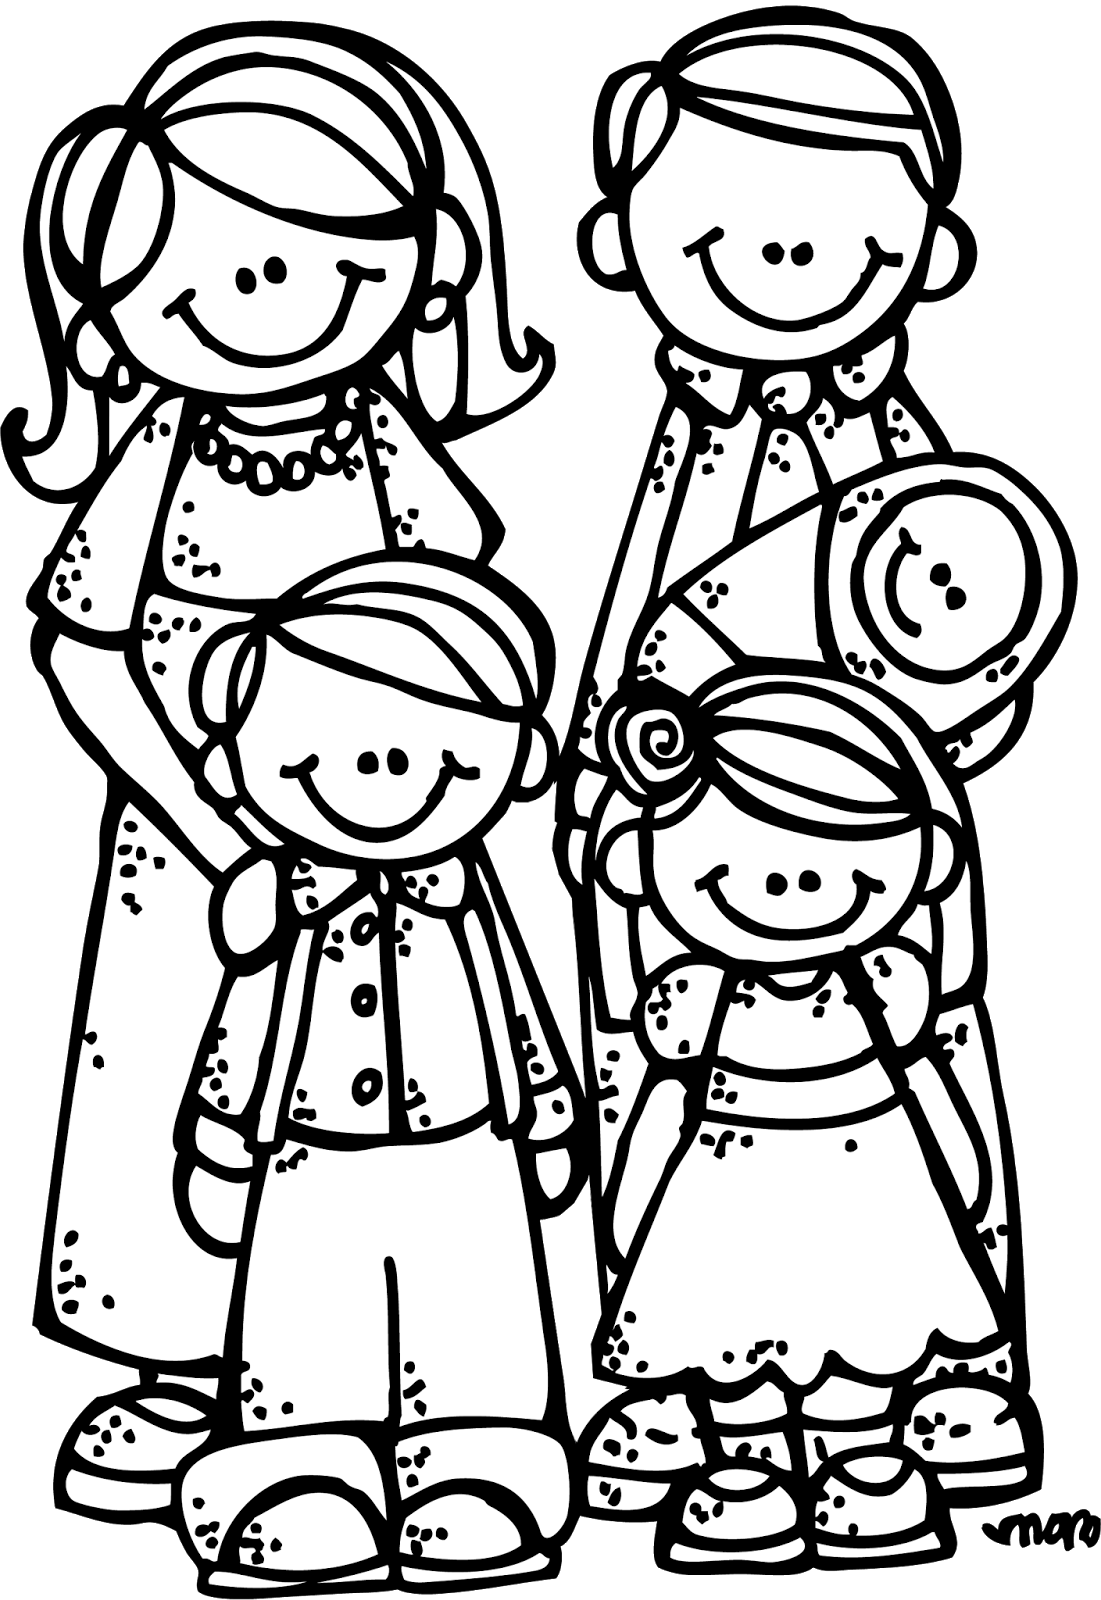 Melonheadz school clipart black and white picture freeuse Melonheadz LDS illustrating: New Eternal Family Graphics:) | Churchy ... picture freeuse